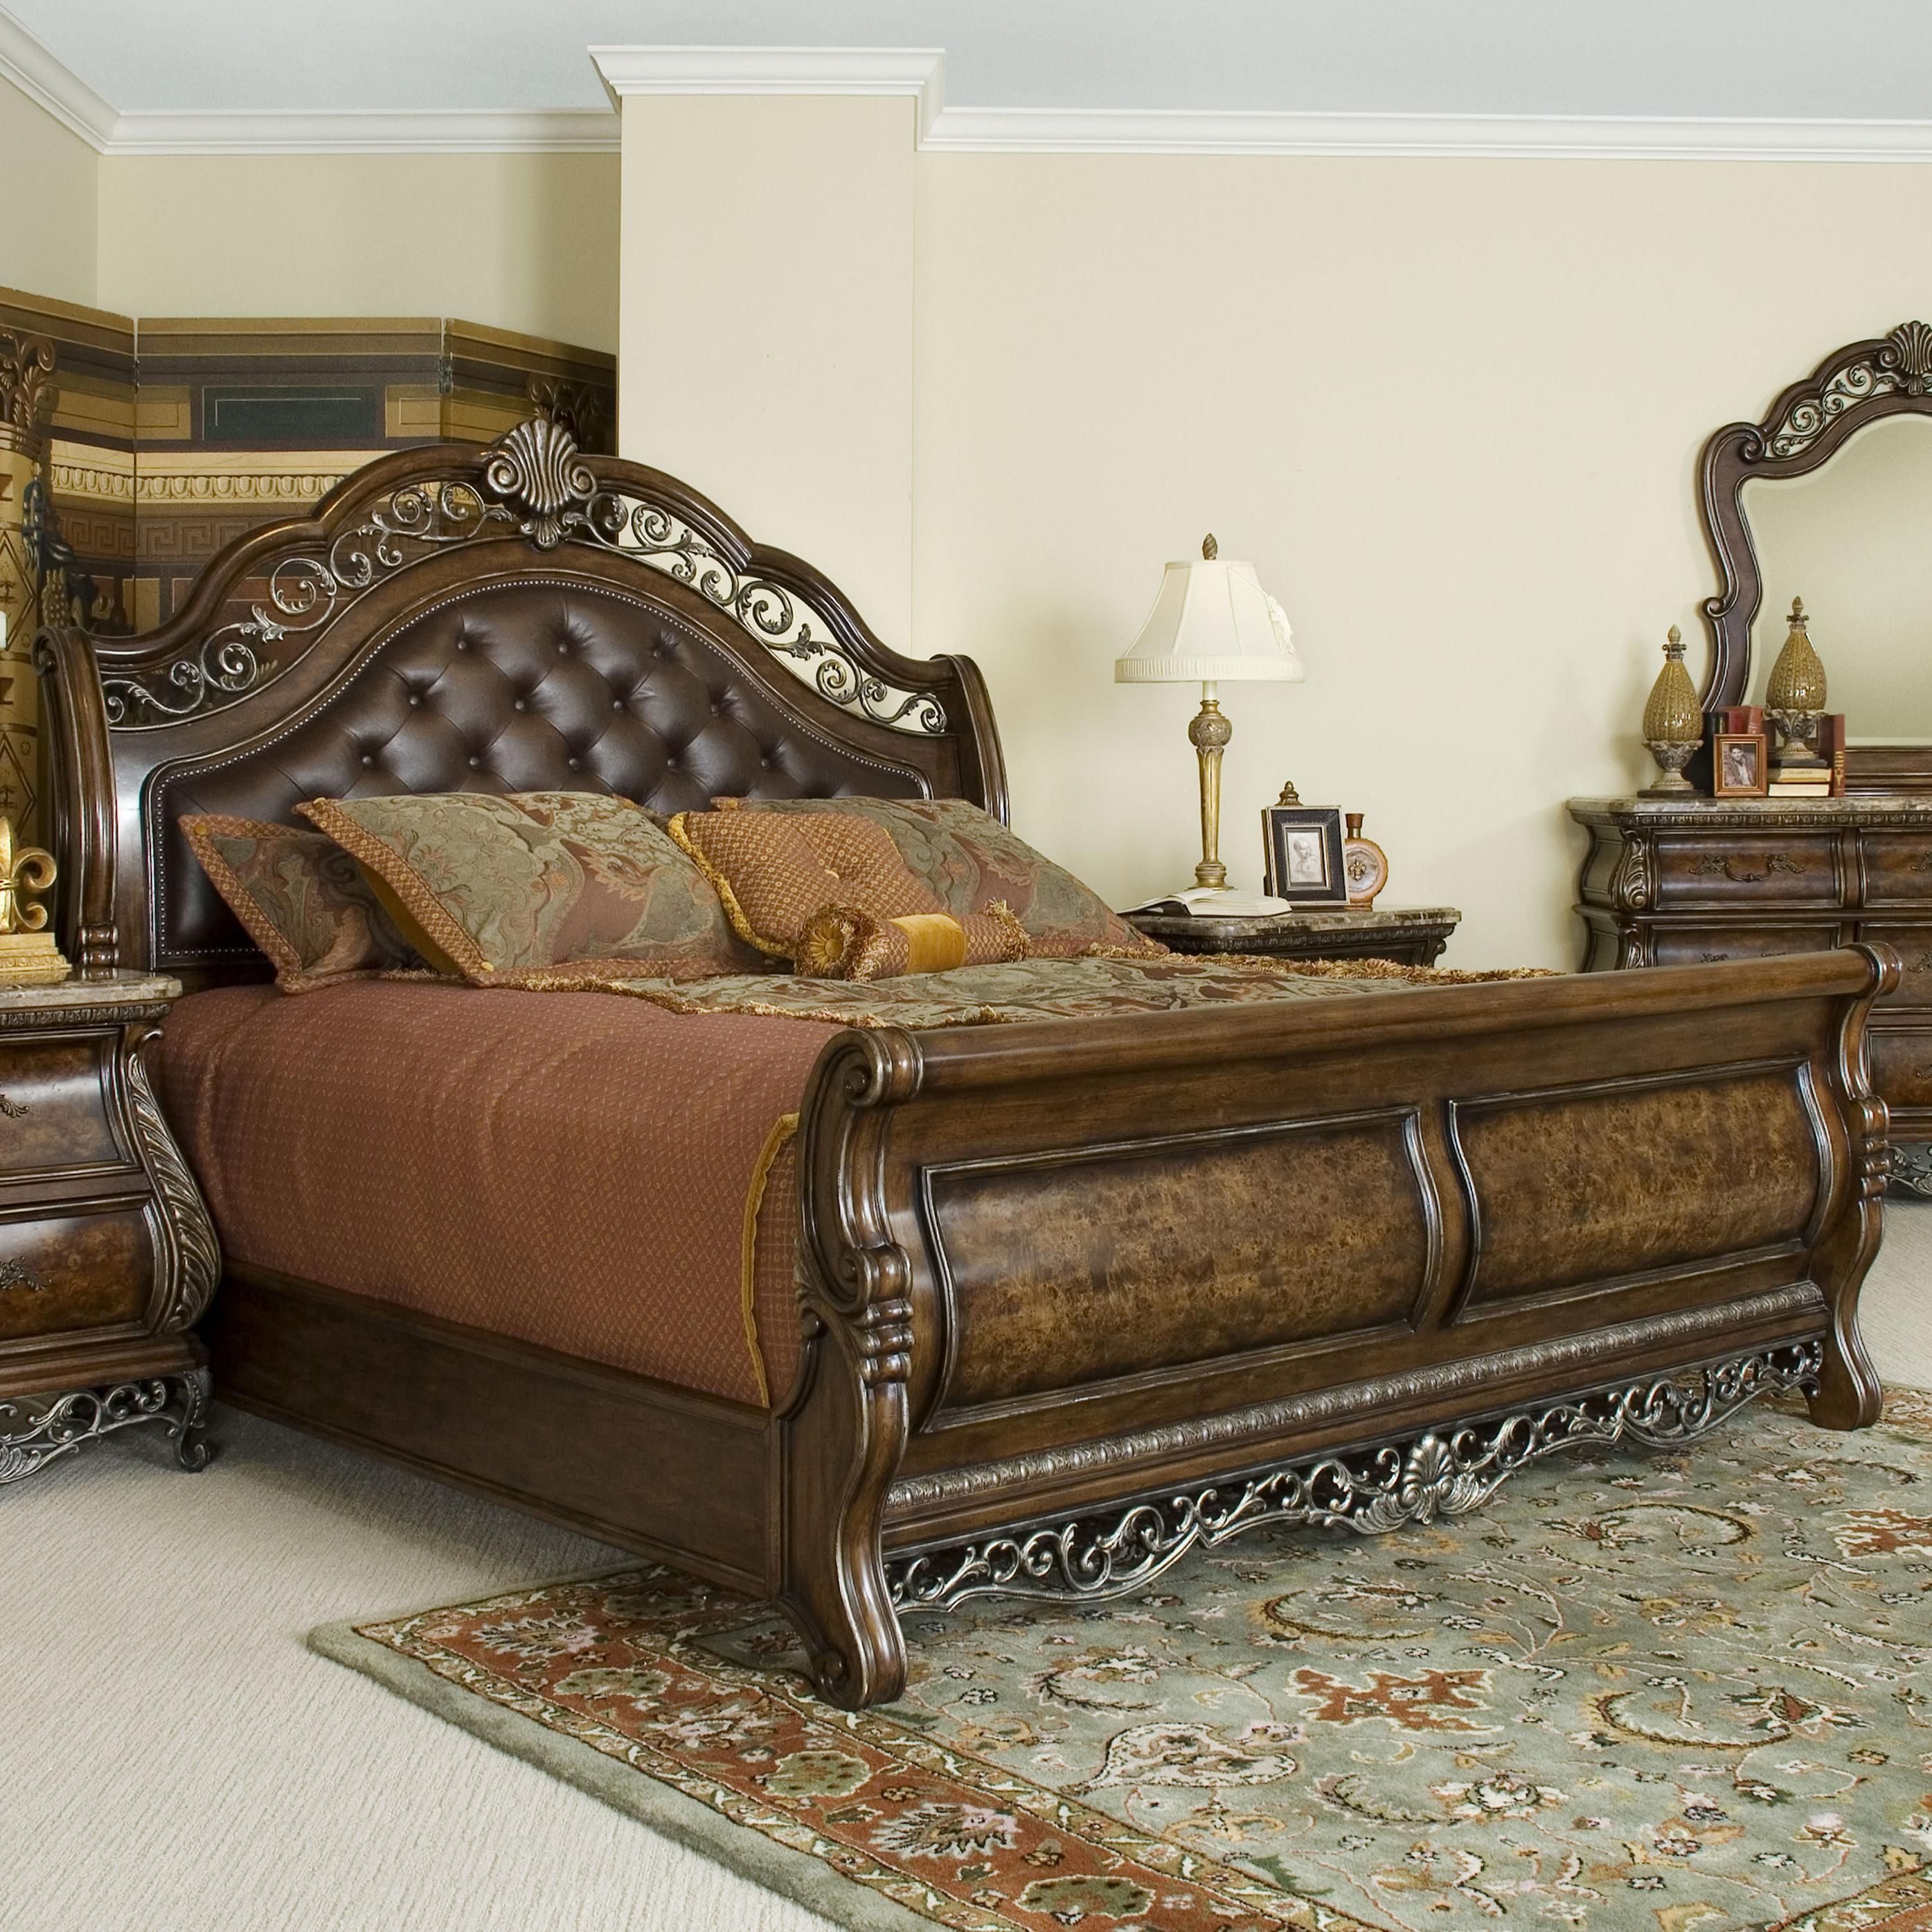 Nebraska Furniture Mart Bedroom Sets Birkhaven Queen Sleigh Bed By Pulaski Furniture Baers Furniture